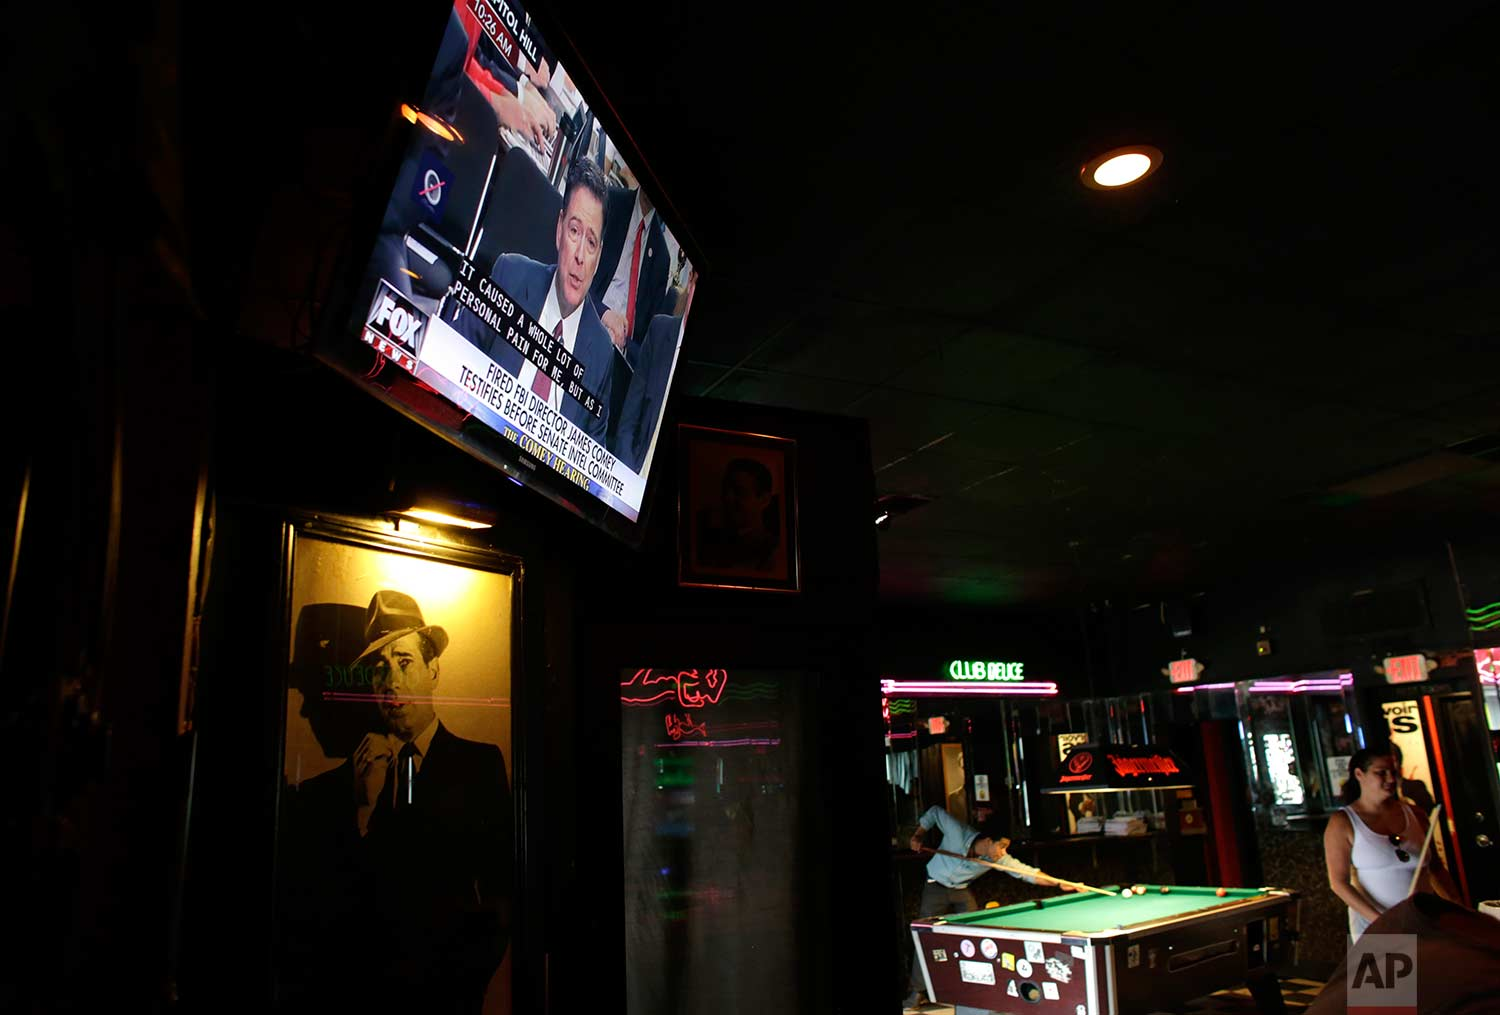 A television shows testimony by former FBI director James Comey before the Senate Intelligence Committee as patrons play pool at Mac's Club Deuce, Thursday, June 8, 2017, in Miami Beach, Fla. (AP Photo/Lynne Sladky)